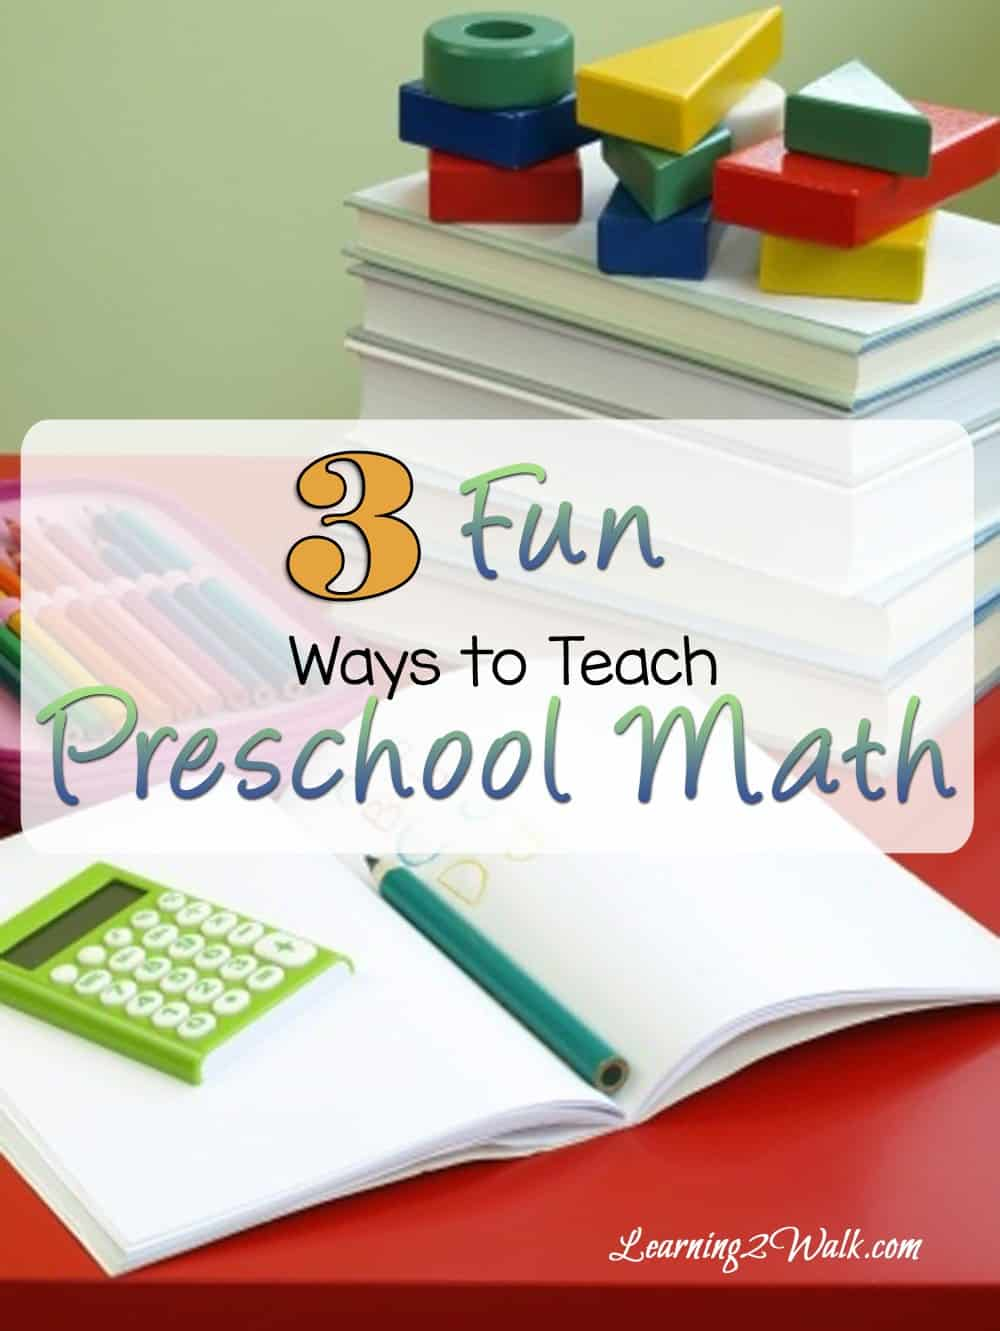 Looking for fun preschool activities? Here are 3 fun ways to teach preschool math